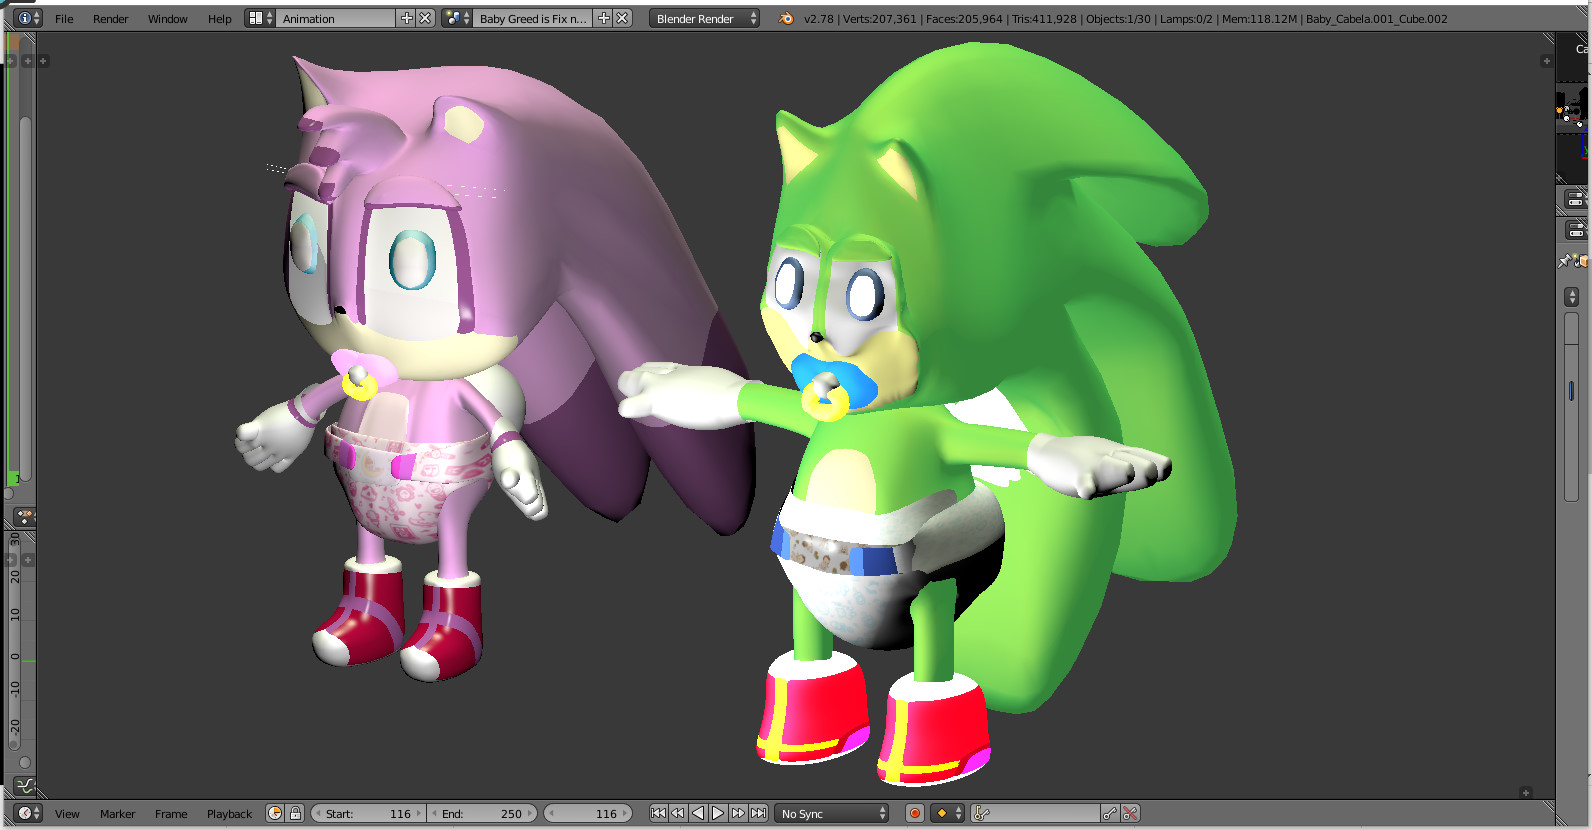 Baby Cabela 3D And Baby Greed 3D Team Power SEGA 2